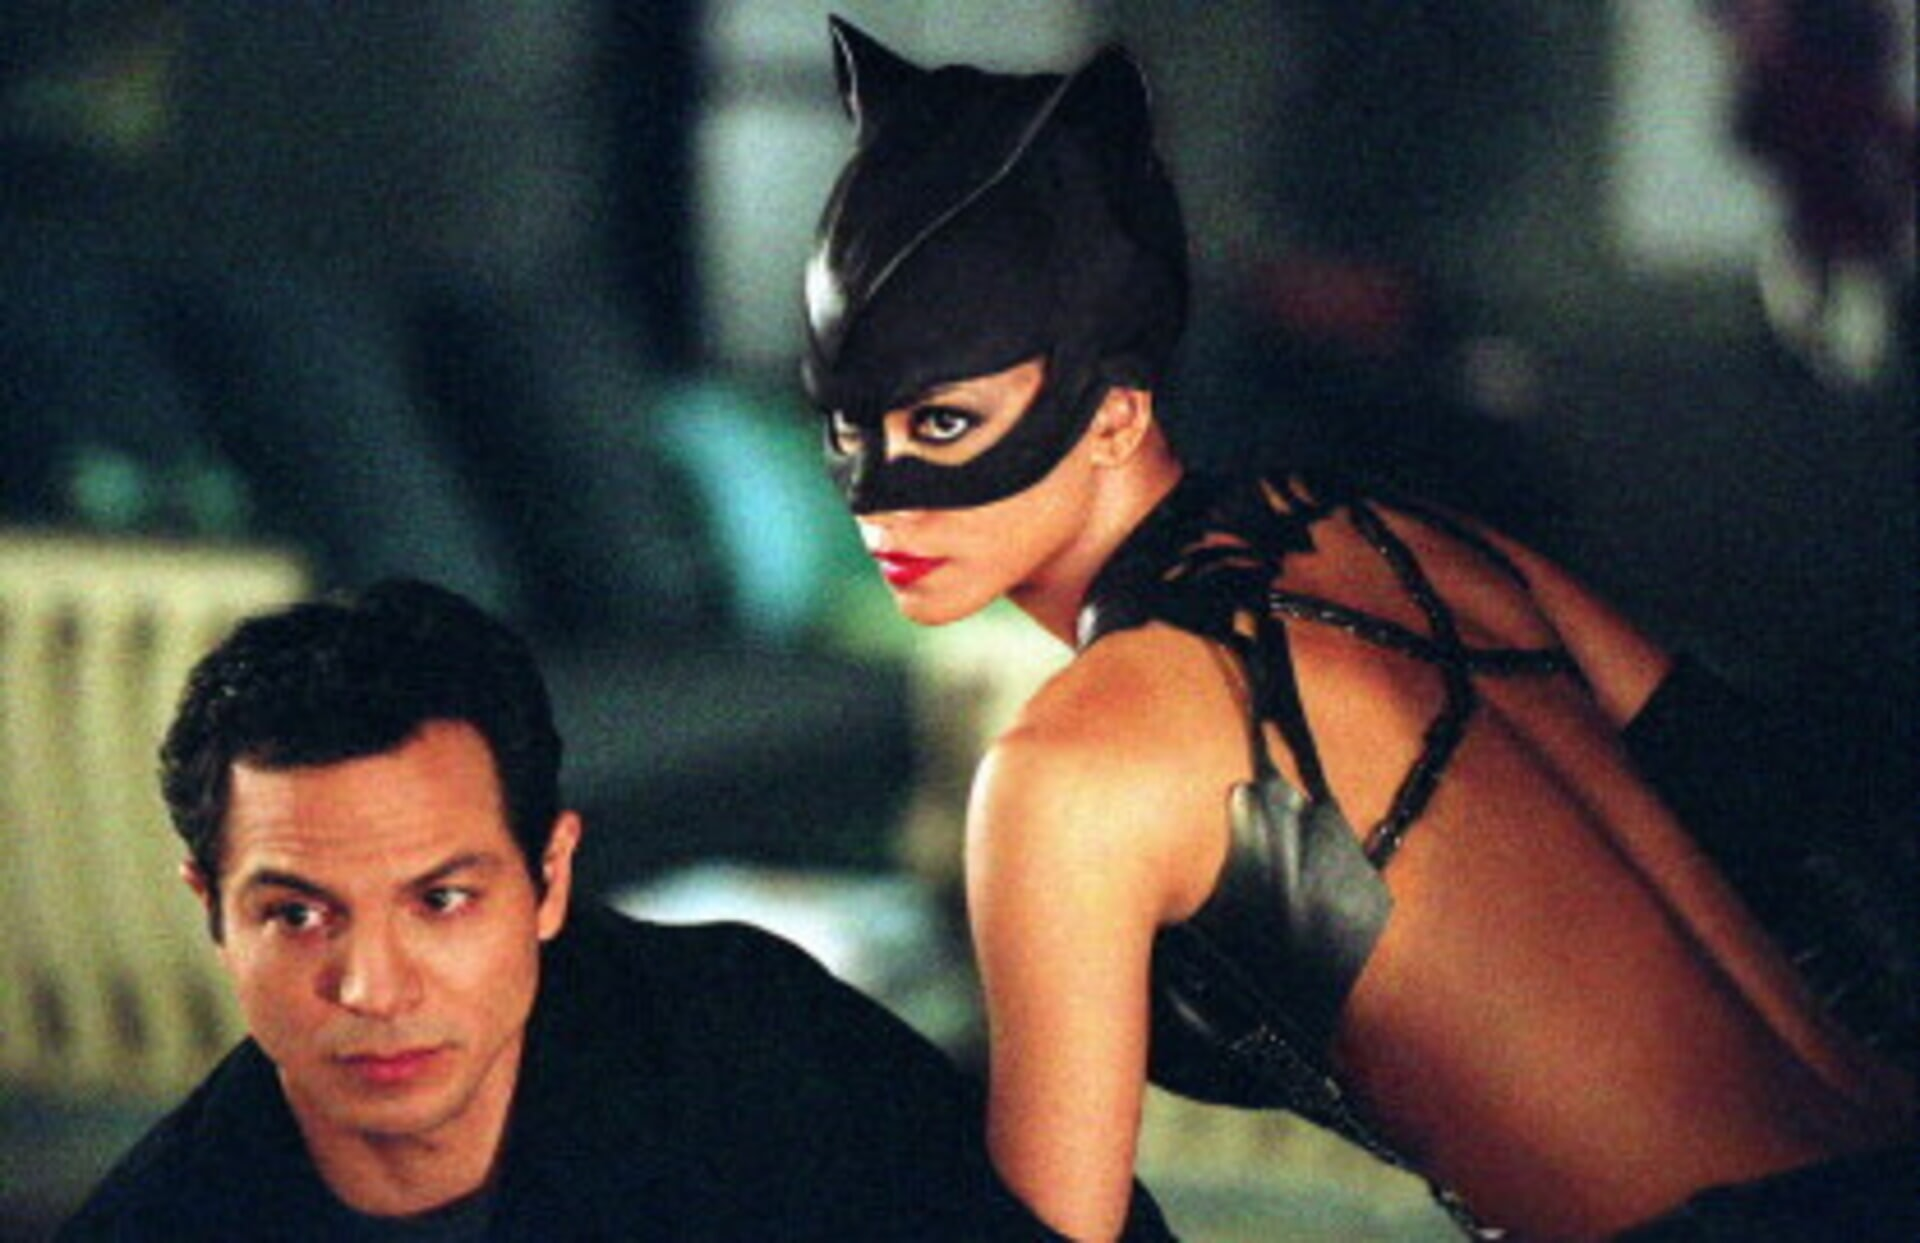 Catwoman - Image 1